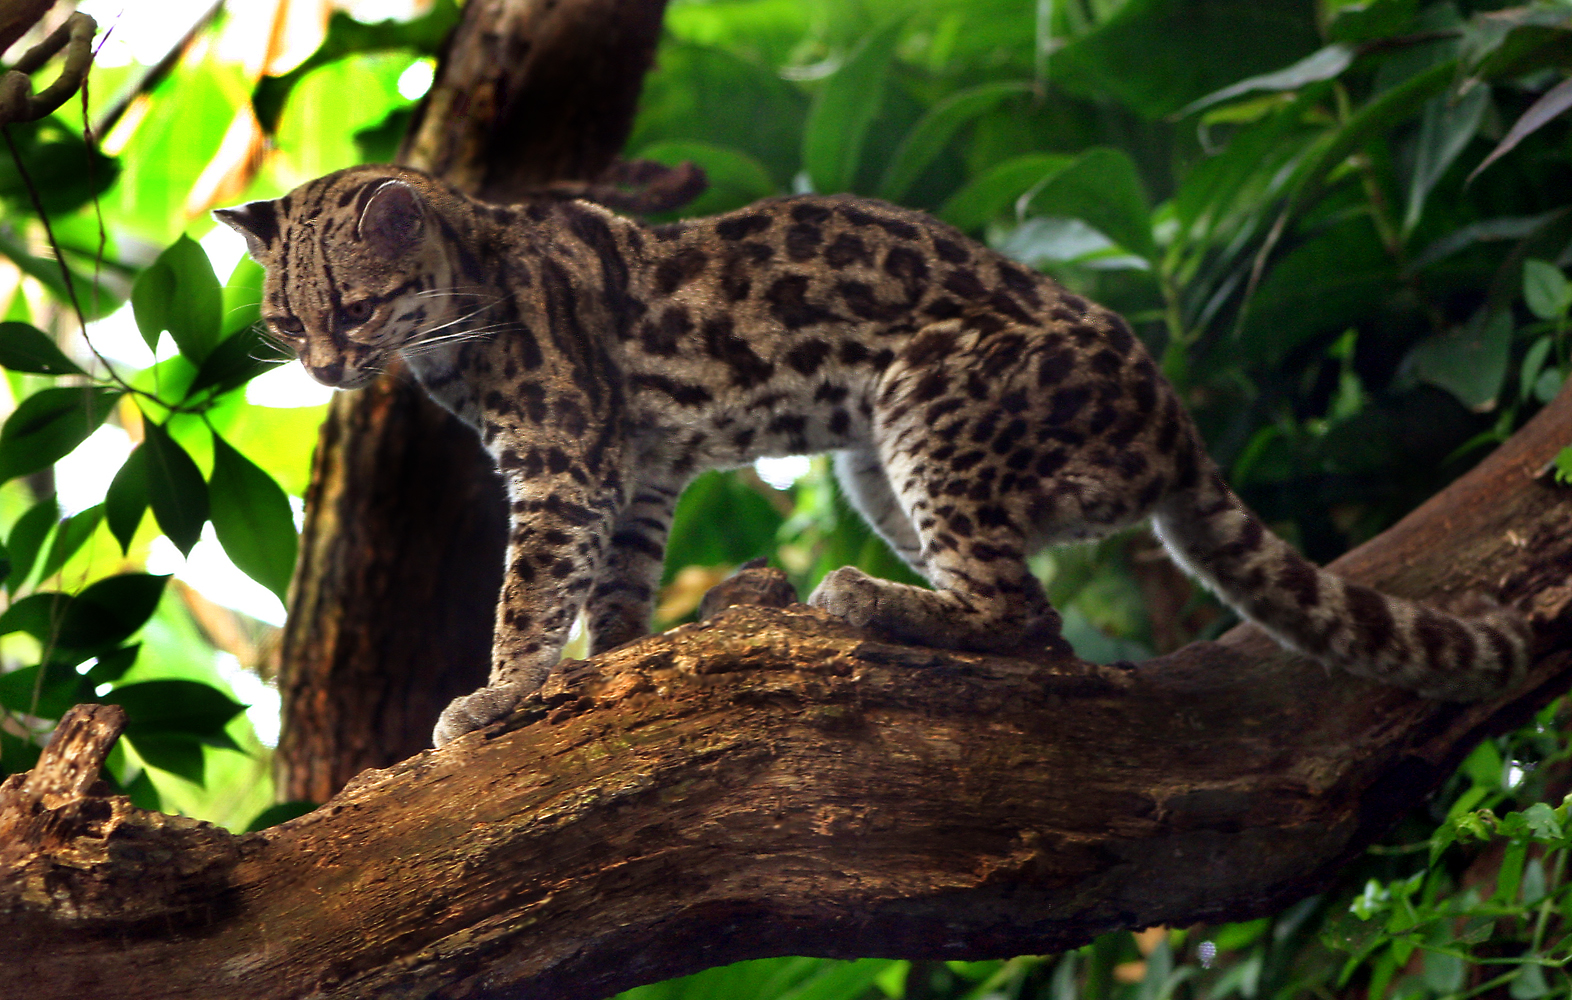 http://upload.wikimedia.org/wikipedia/commons/3/32/Margaykat_Leopardus_wiedii.jpg